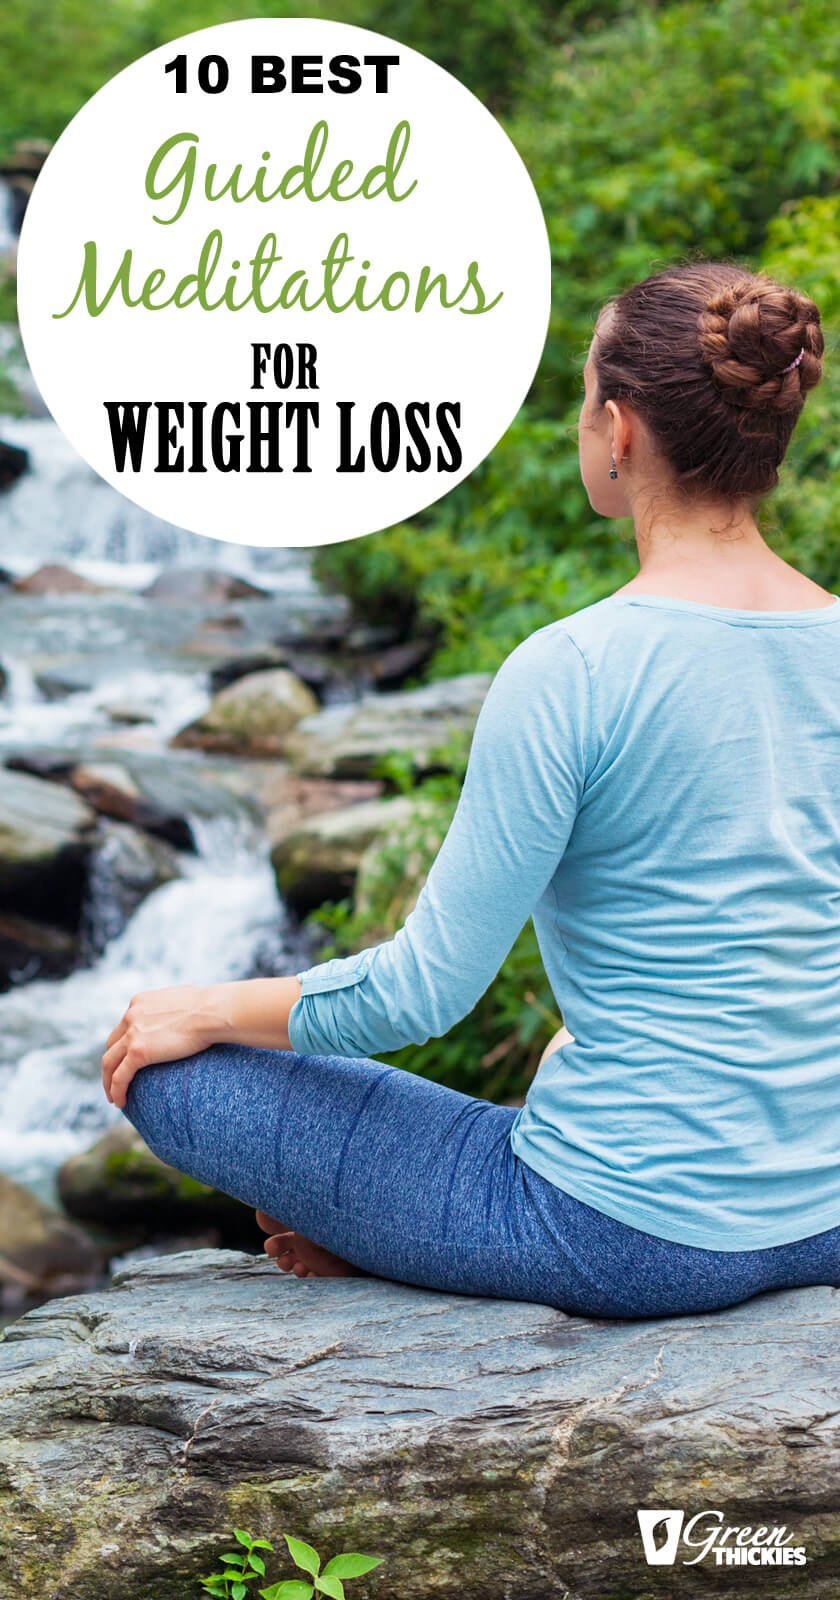 These 10 best guided meditations for weight loss will change your life.  Most people think the answer to weight loss is to go on a diet. But as we know from experience, going on a diet is often short lived and frustrating, often leading to failure and even more weight gain.This is because we are missing out on one crucial step…#meditations #guidedmeditations #freemeditations #meditationvideos #meditationsweightloss #loseweightmeditations #meditationforweightloss